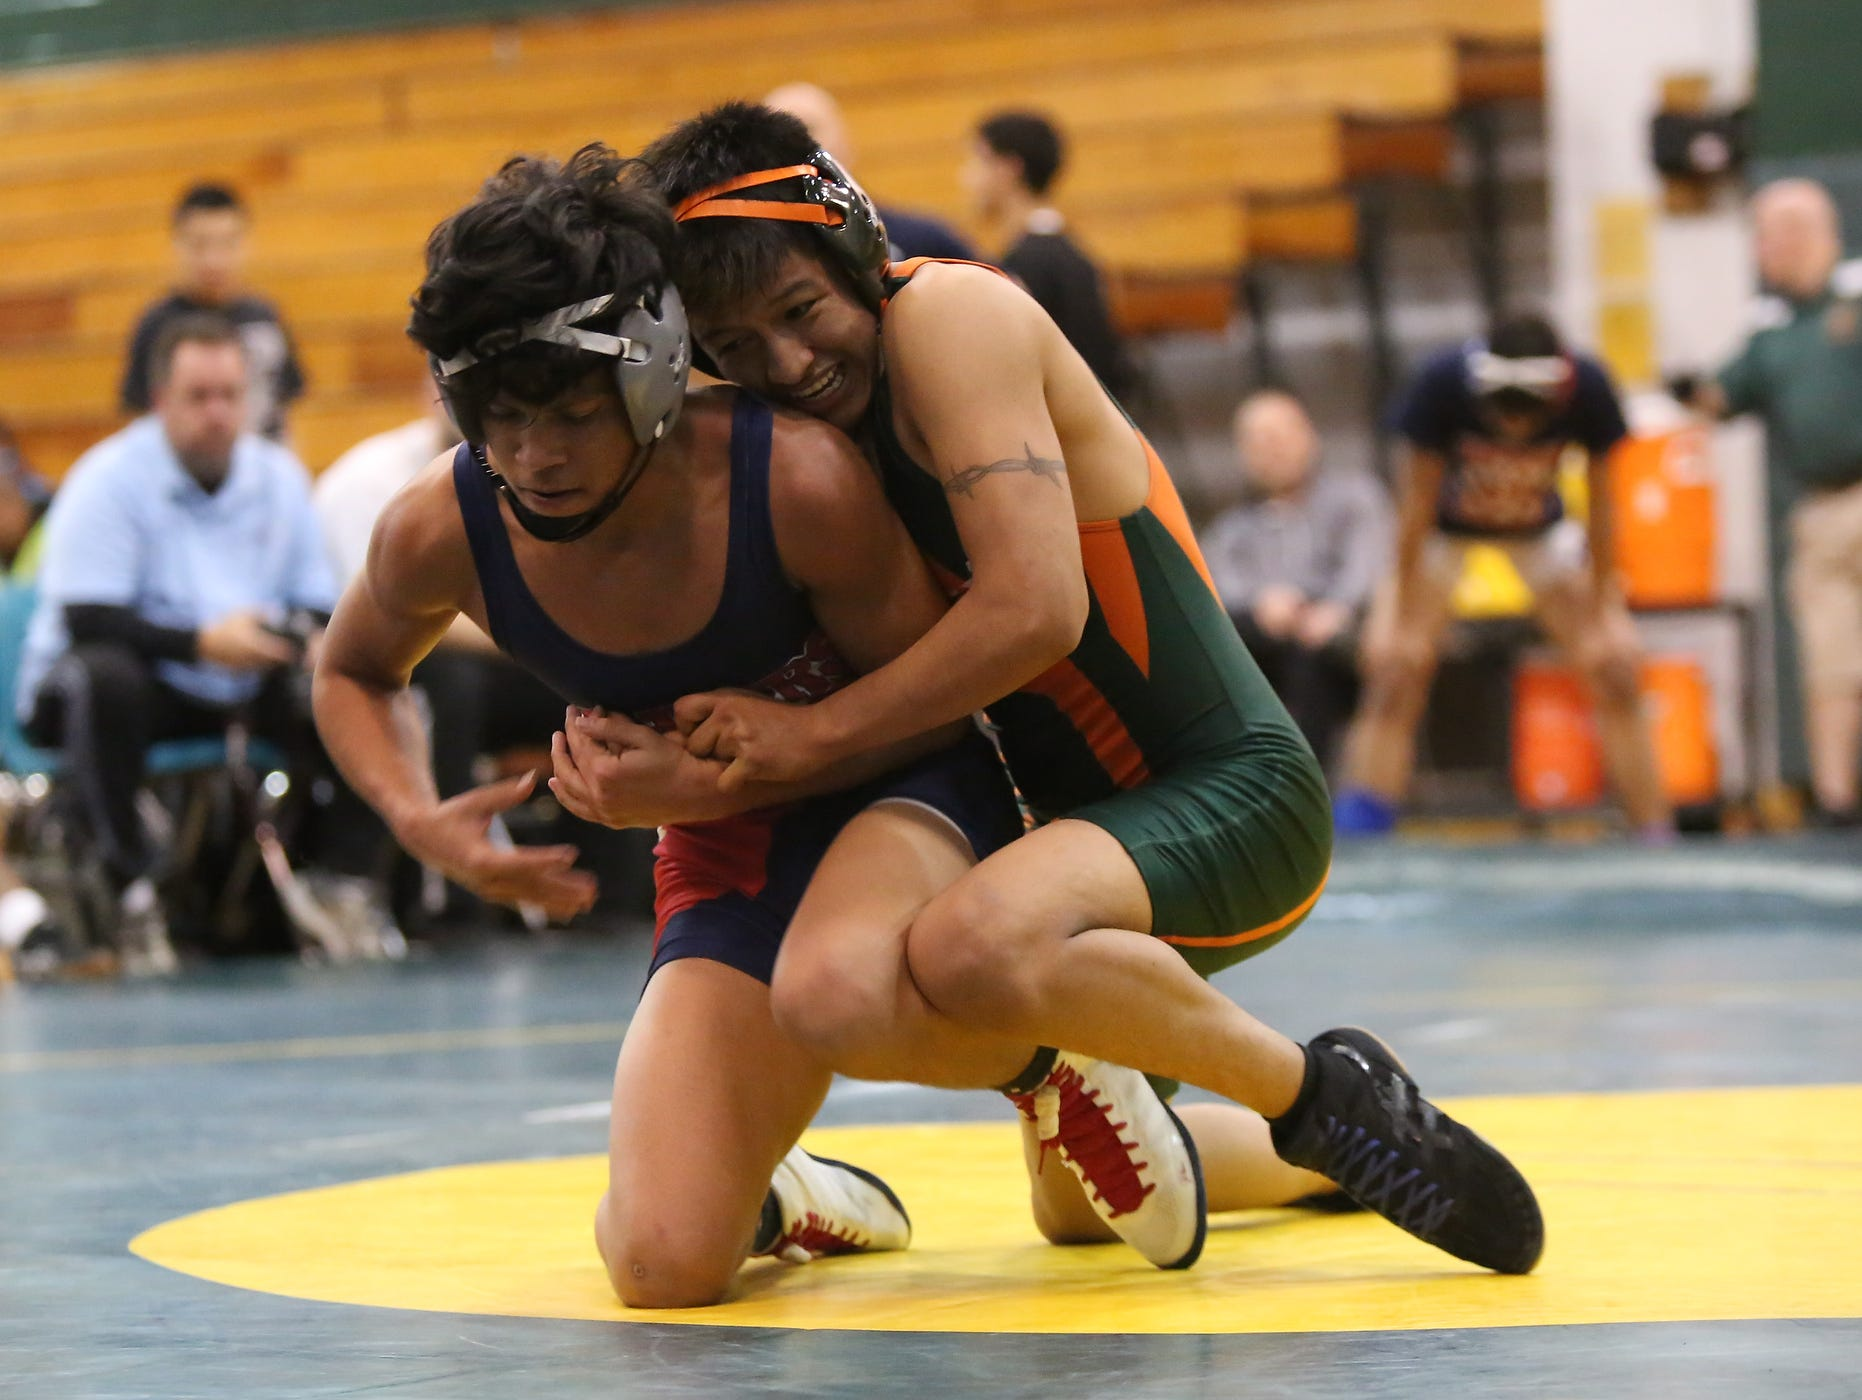 Yonkers' DJ Carrera, left, wrestles East Ramapo's Luis Lema-Lema in a 120-pound match during a quad meet in the Section 1 dual meet championships at Ramapo High School in Spring Valley on Dec. 2, 2015. East Ramapo defeated Yonkers 53-29 and advanced to the quarterfinals.